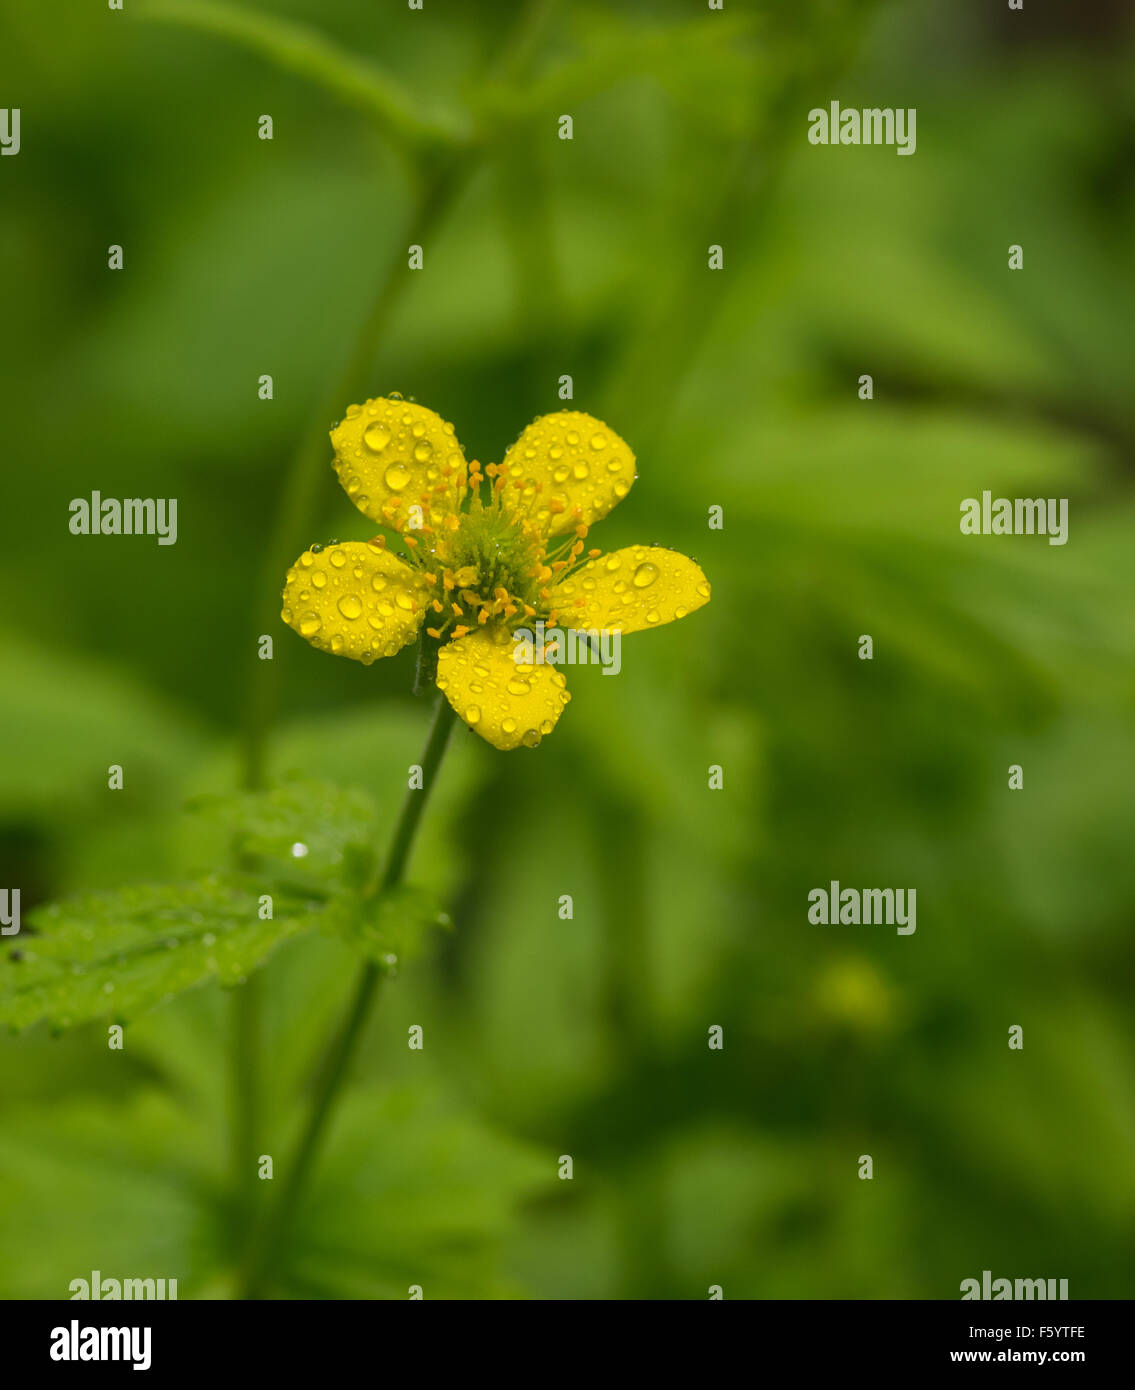 Yellow spring flower with five petals covered by small water drops yellow spring flower with five petals covered by small water drops after rain mightylinksfo